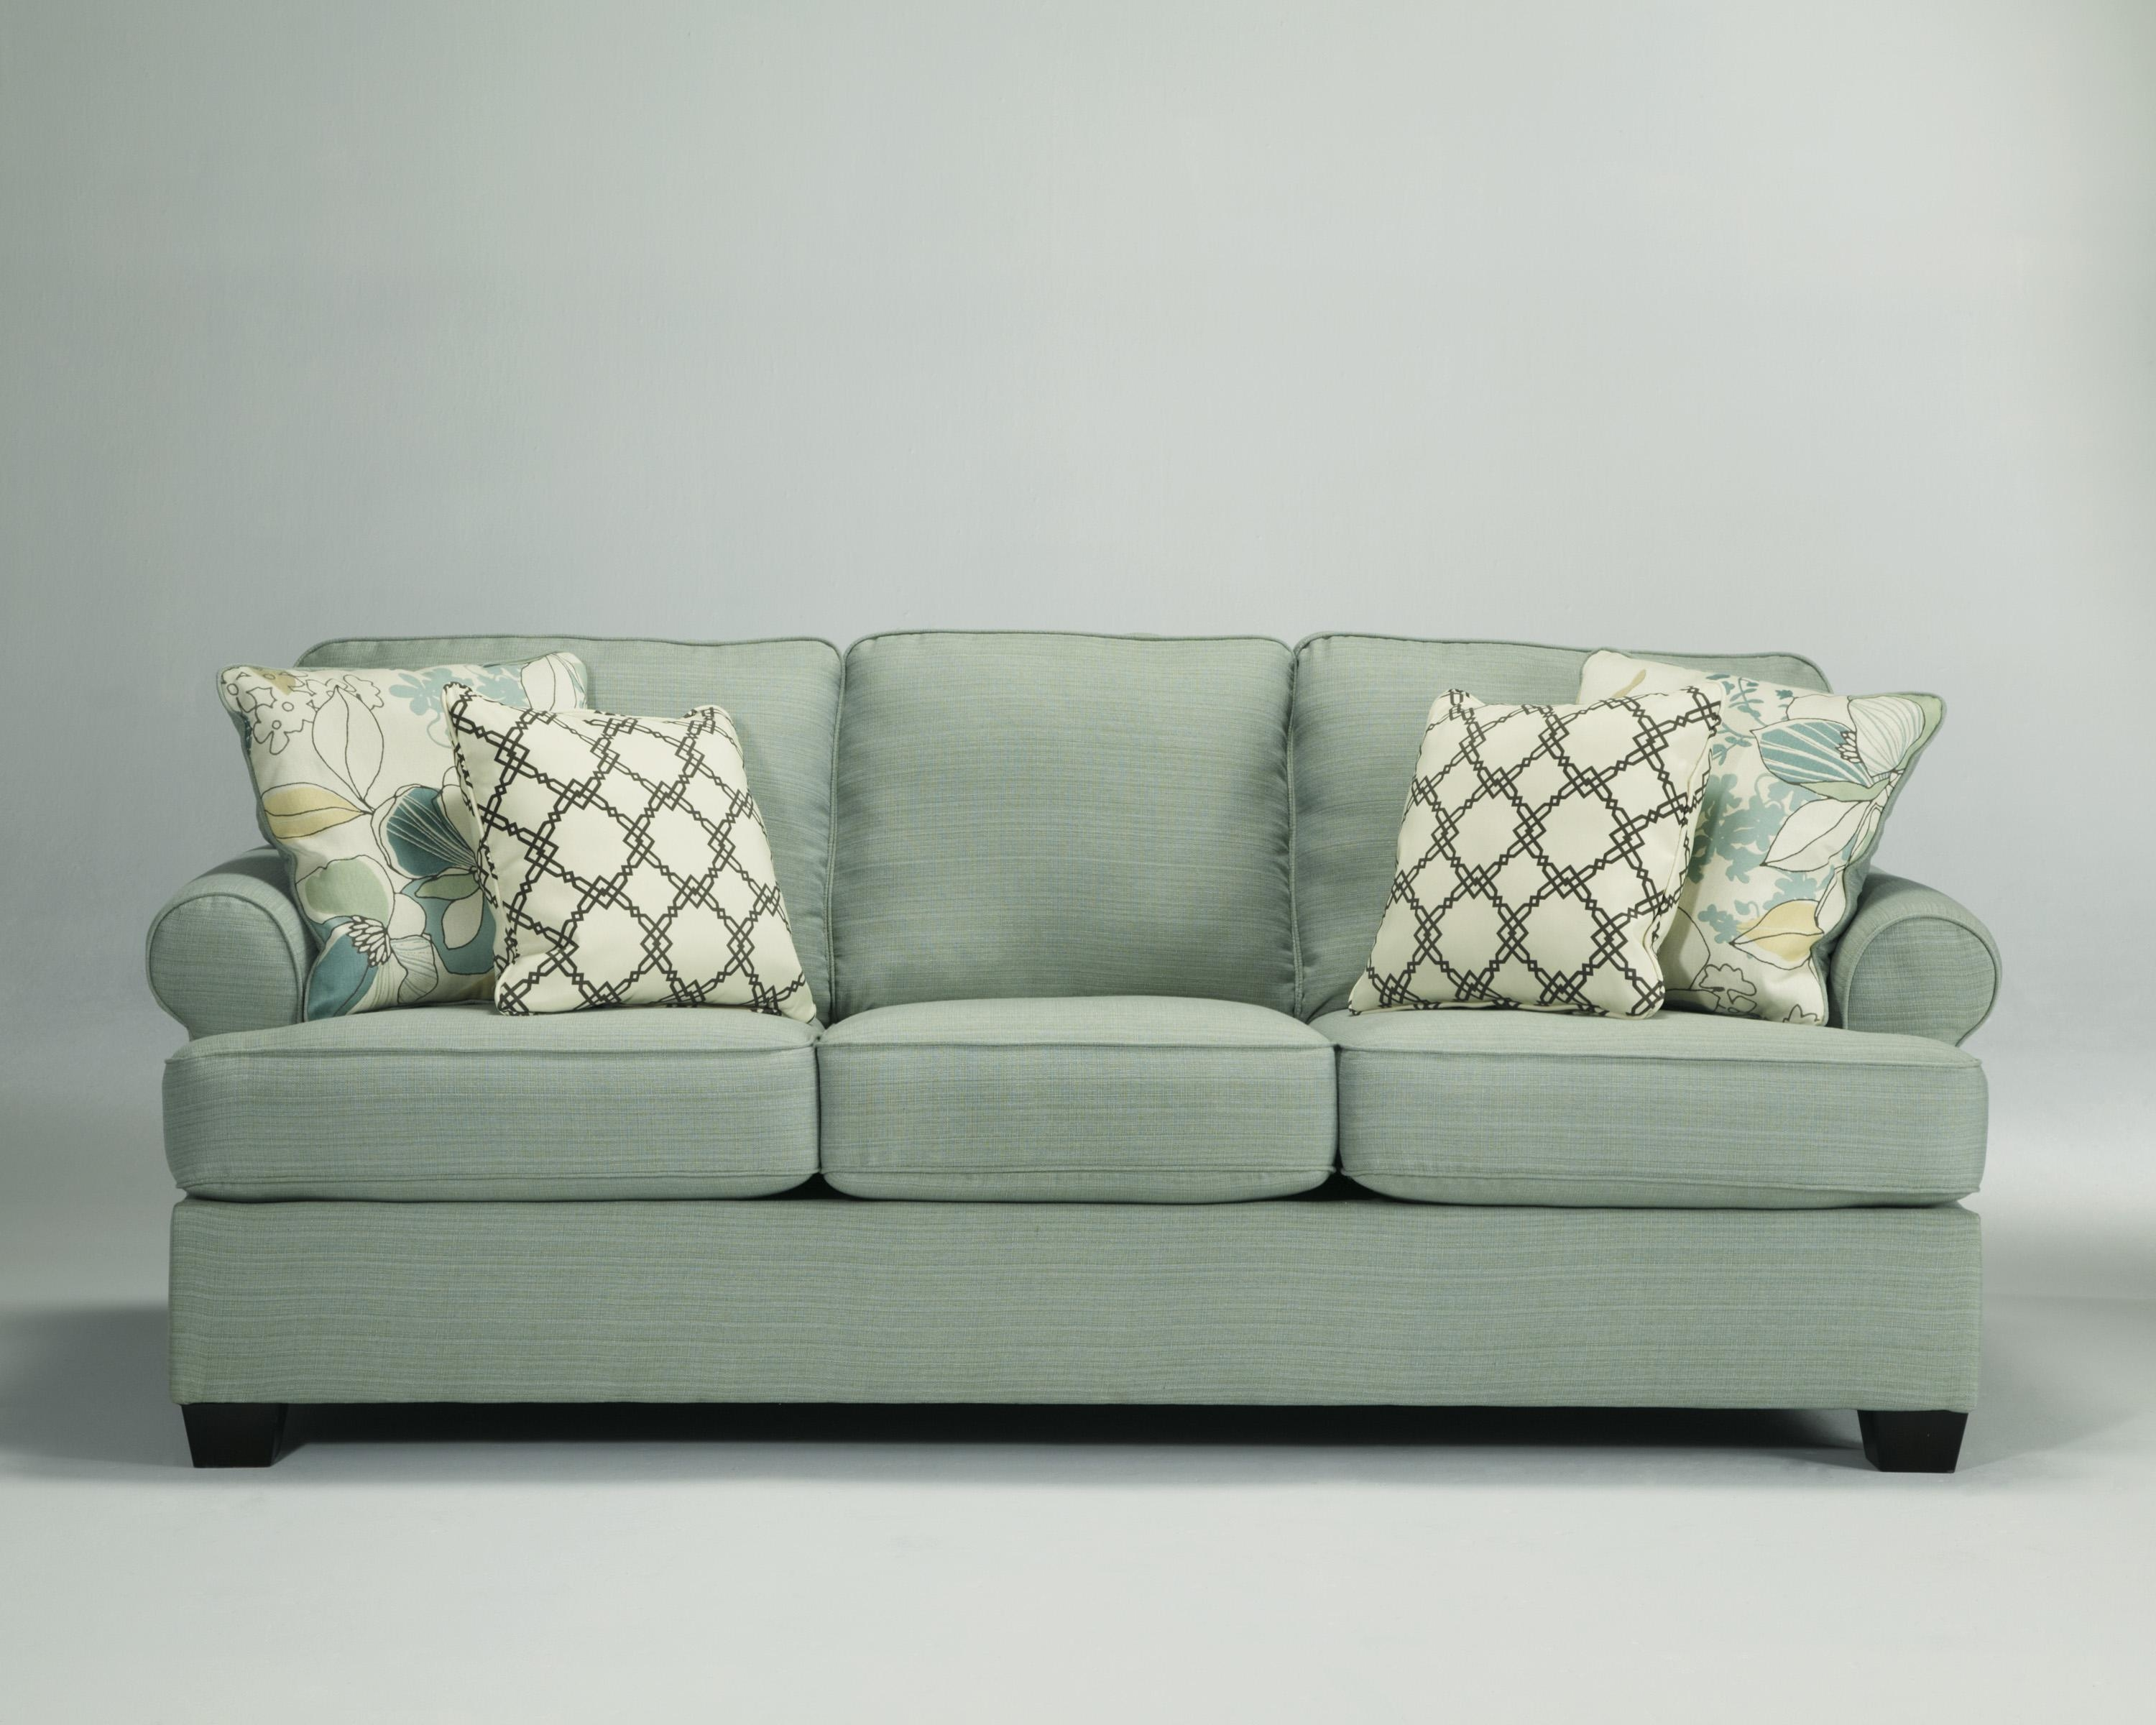 Seafoam Green Sofa With Ideas Gallery 17500 | Kengire Intended For Seafoam Green Couches (Image 15 of 20)